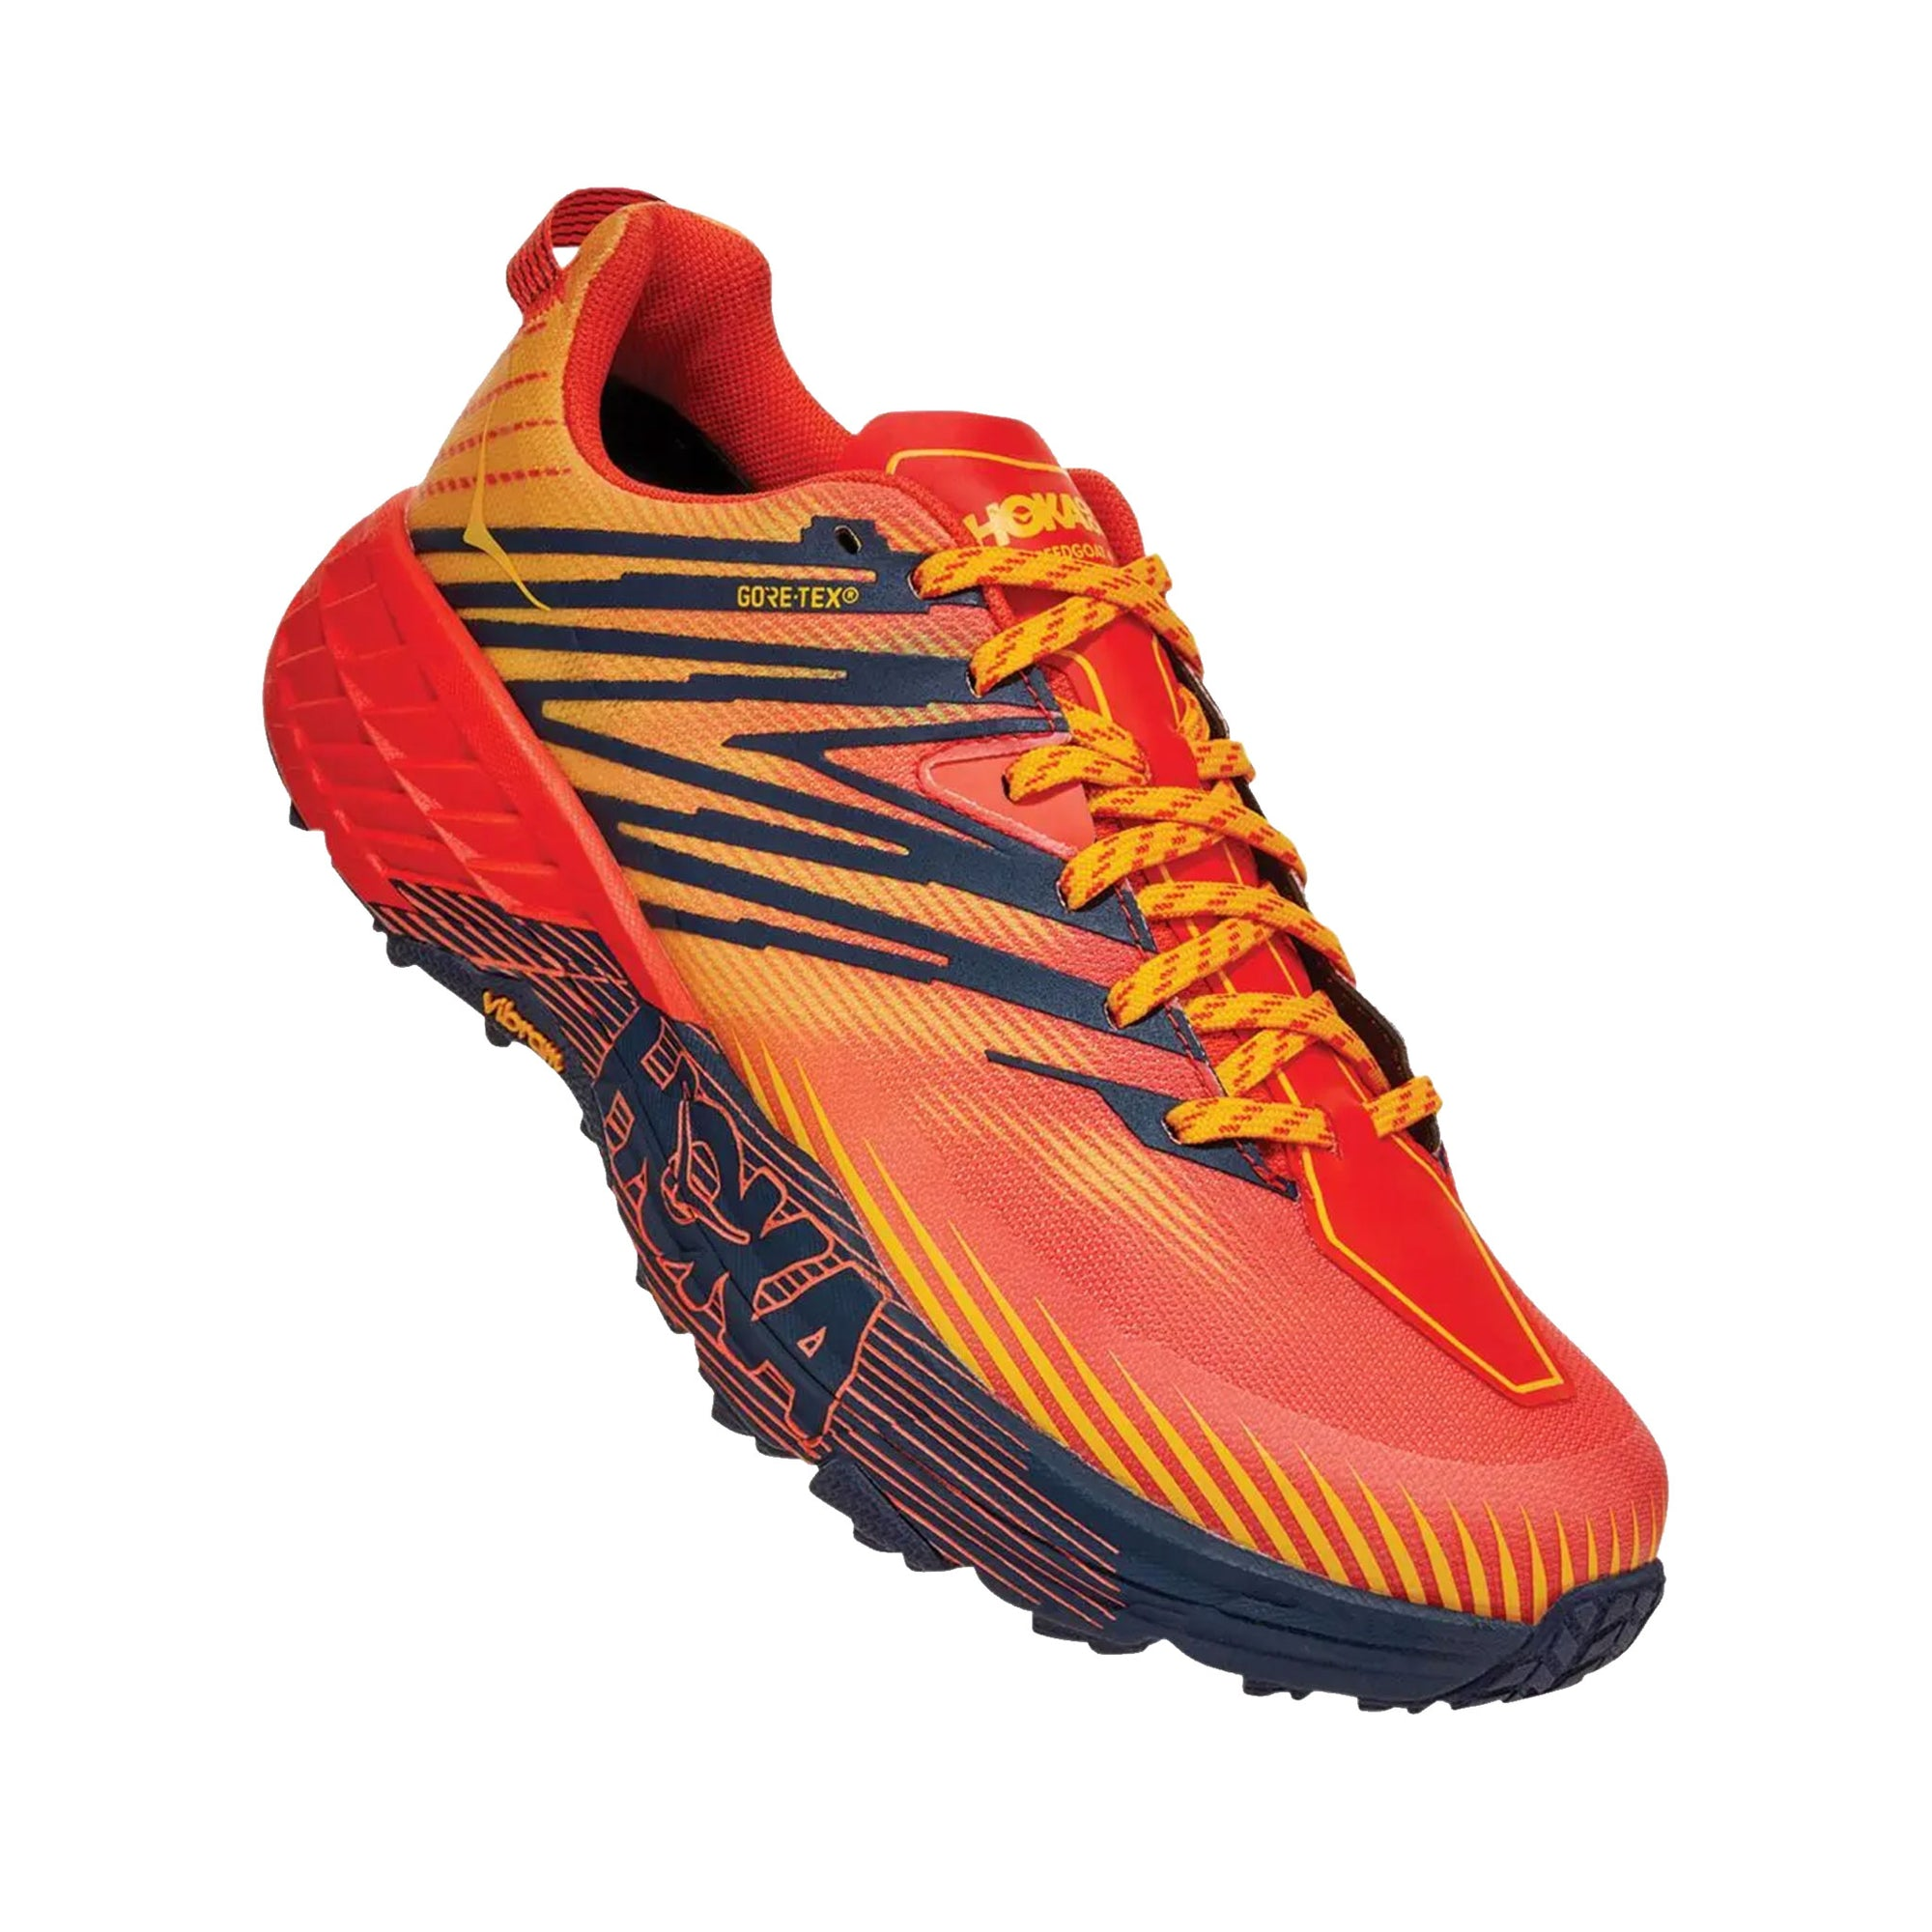 hoka one one shoes online Speedgoat 4 Gore-Tex Mandarin Red Gold Fusion sneakers runners footwear